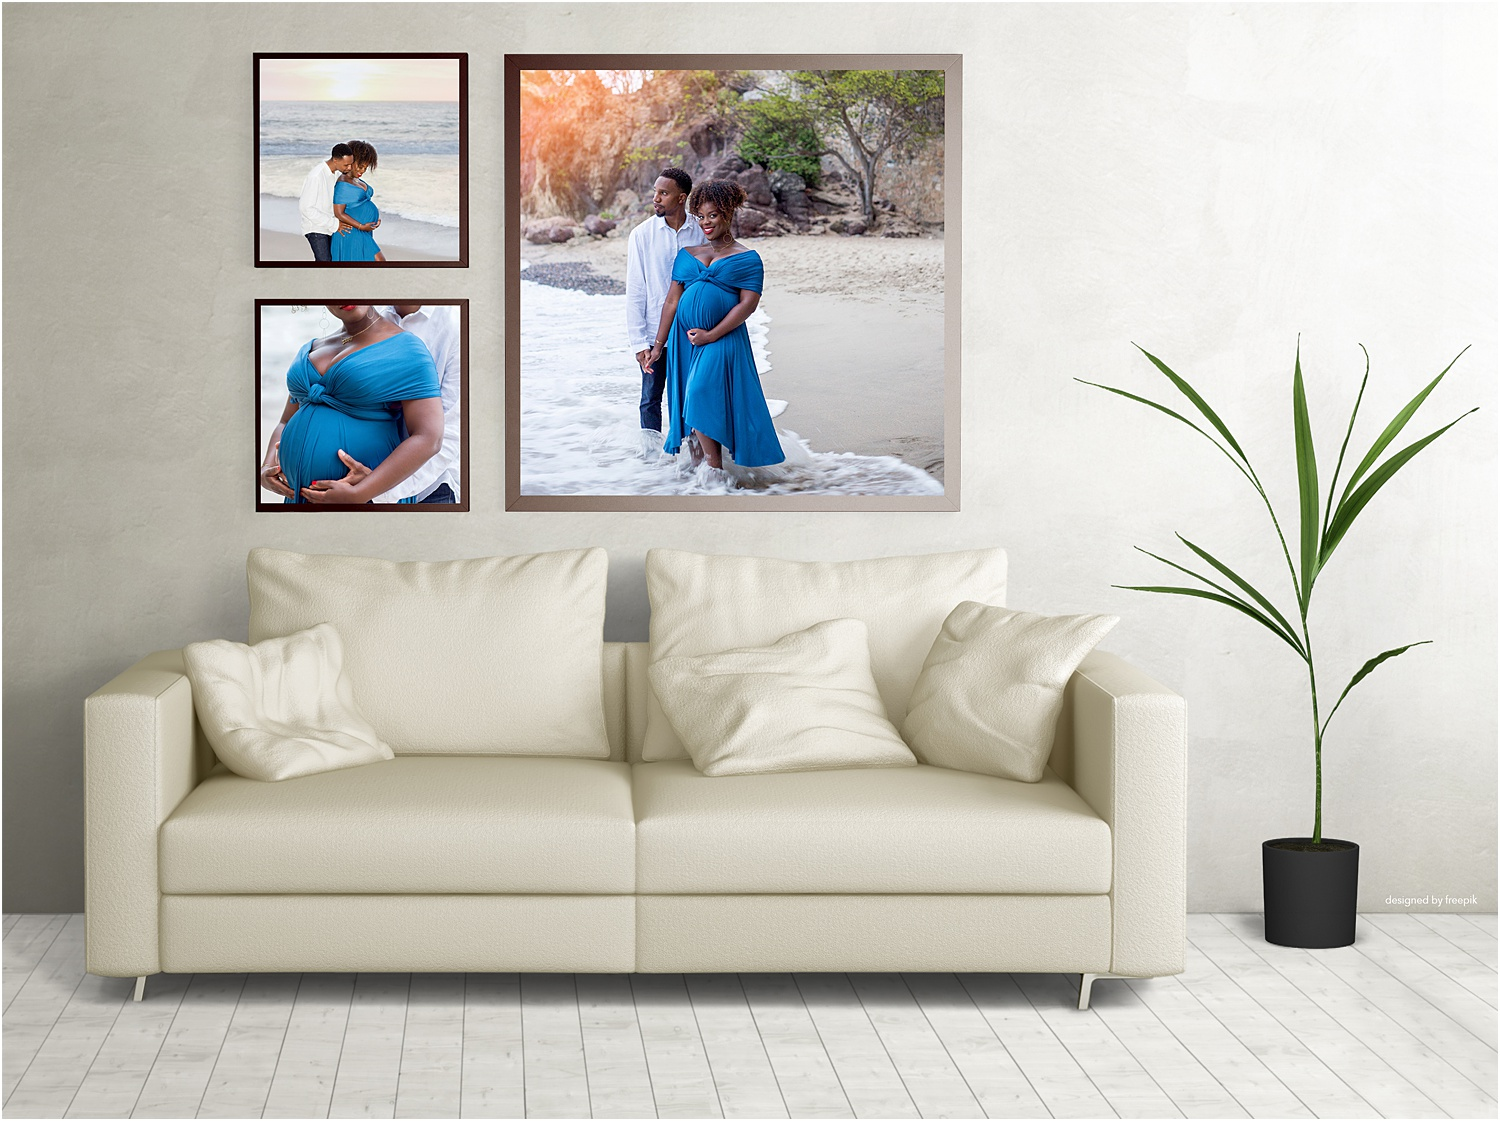 Three framed images to create a large gallery wall.